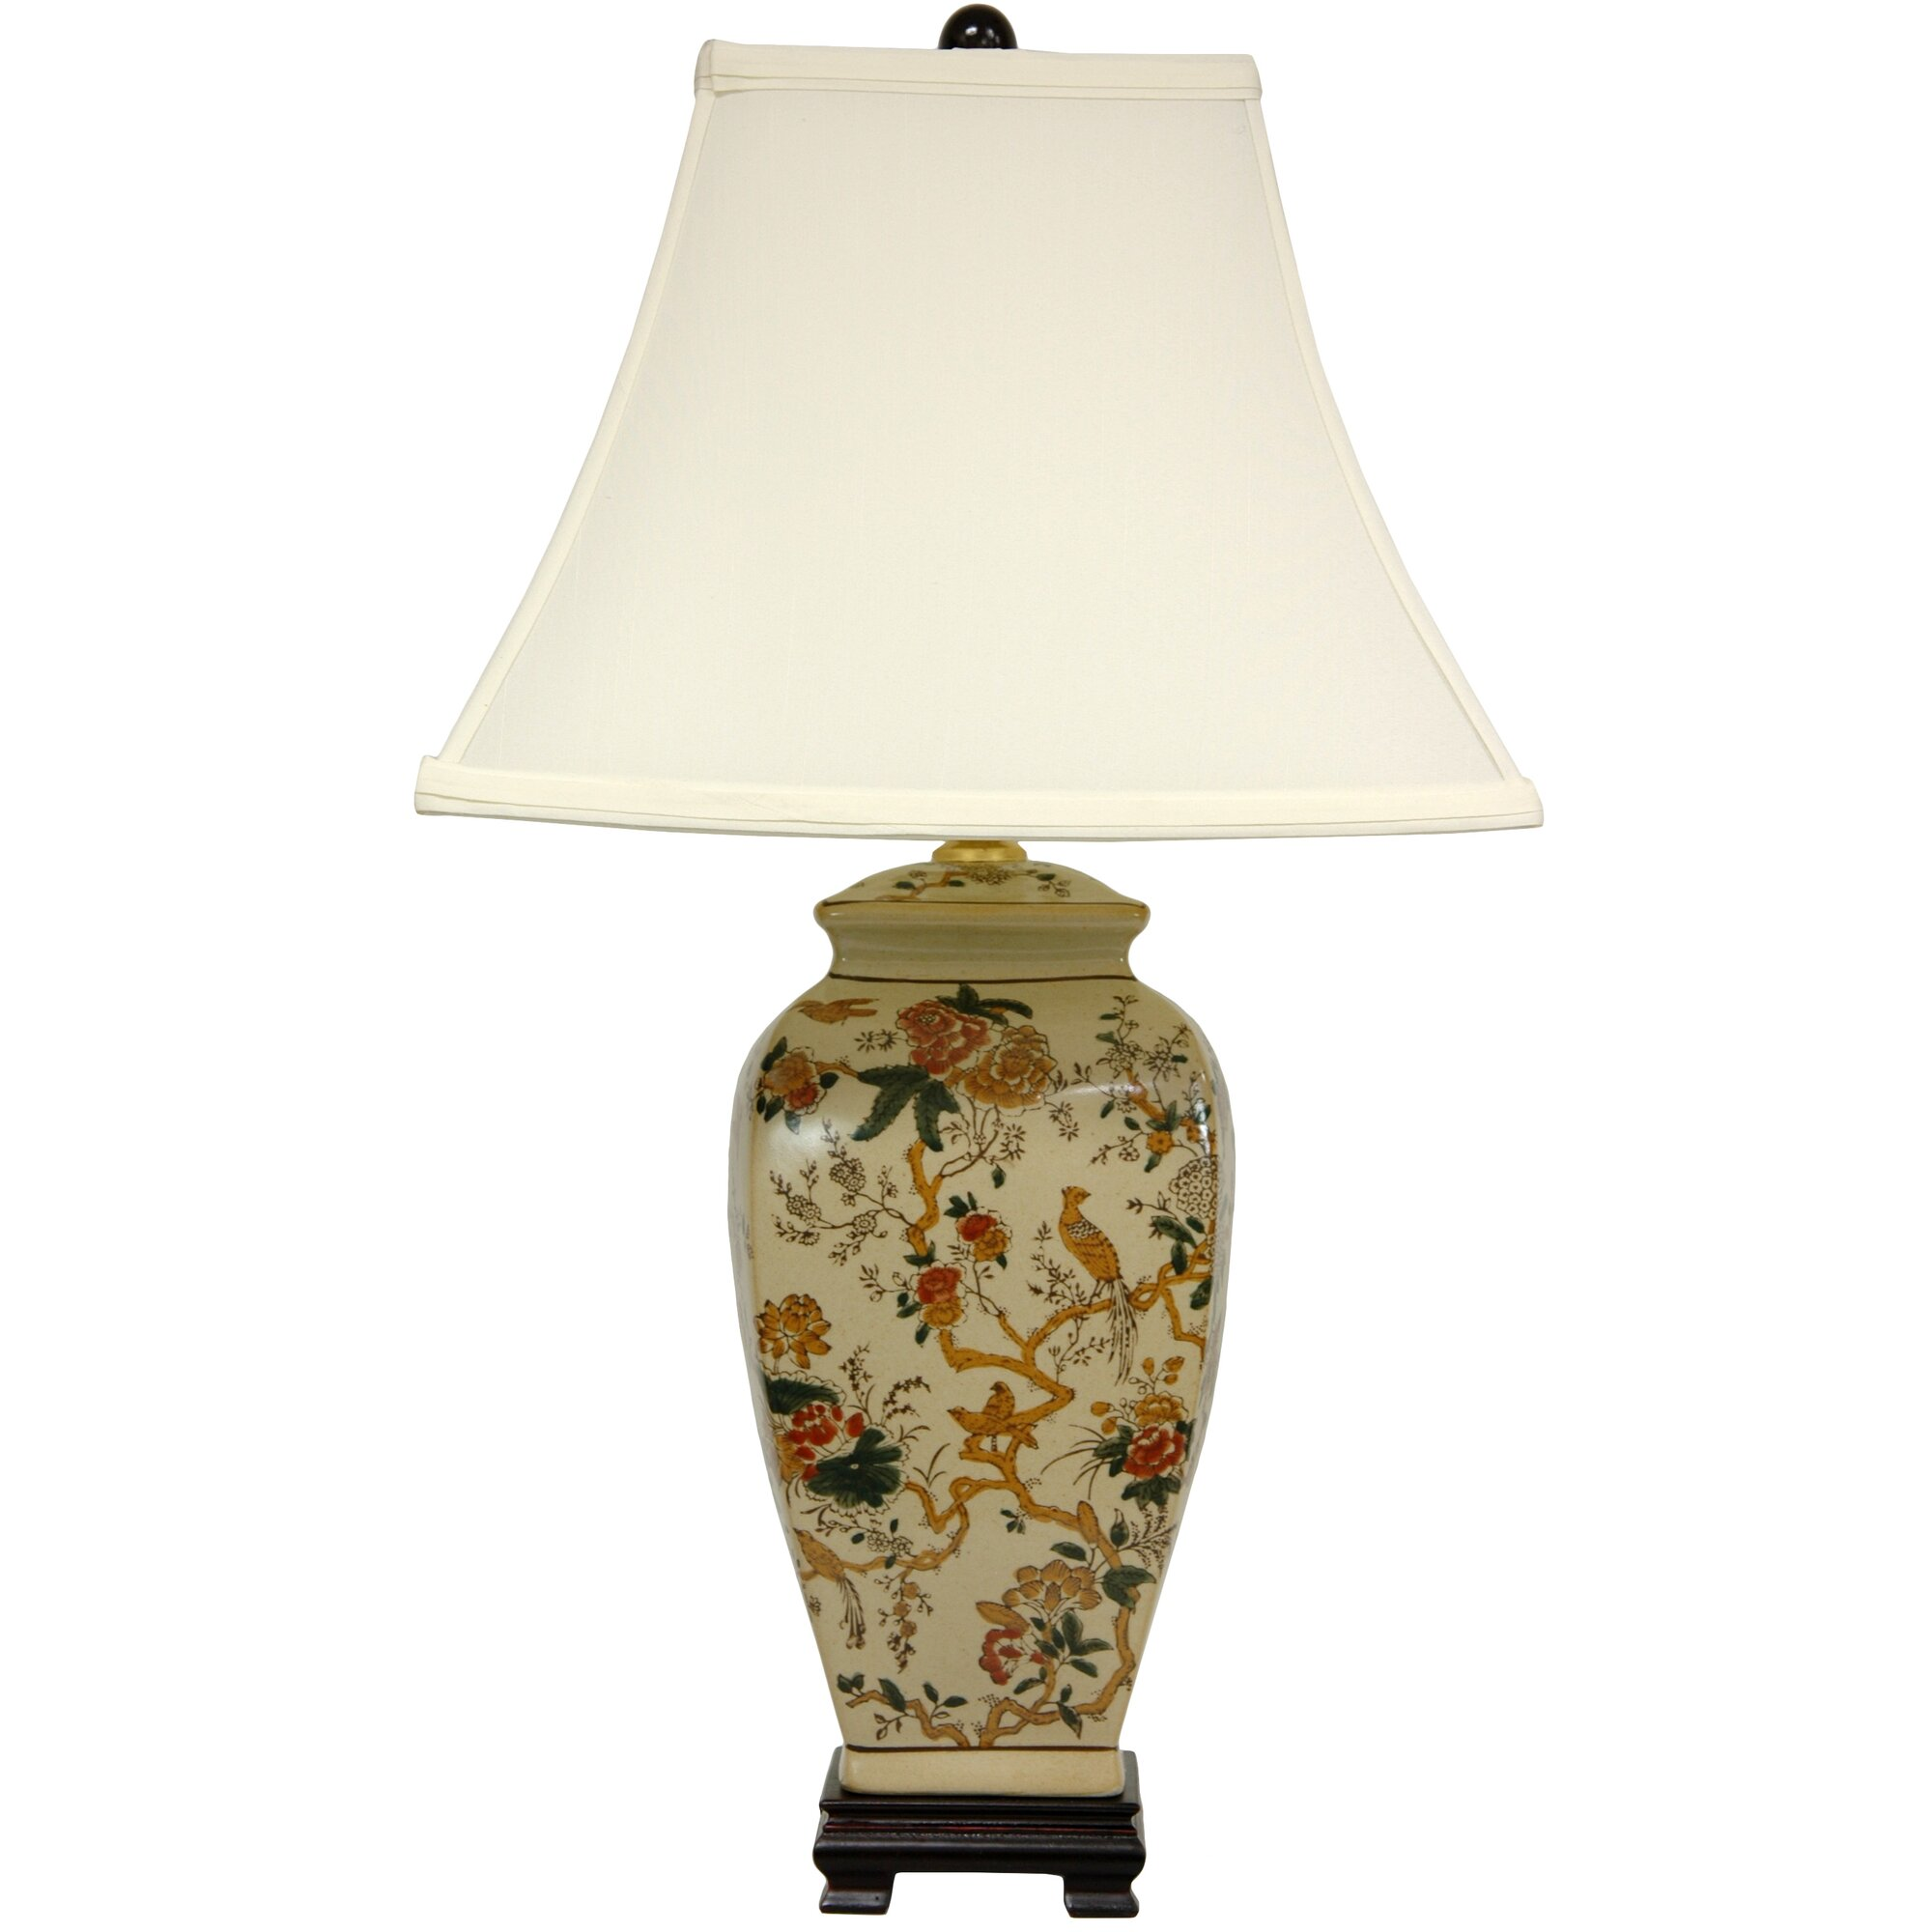 Lime green table lamp - Autumn Birds And Flowers Vase 25 Table Lamp